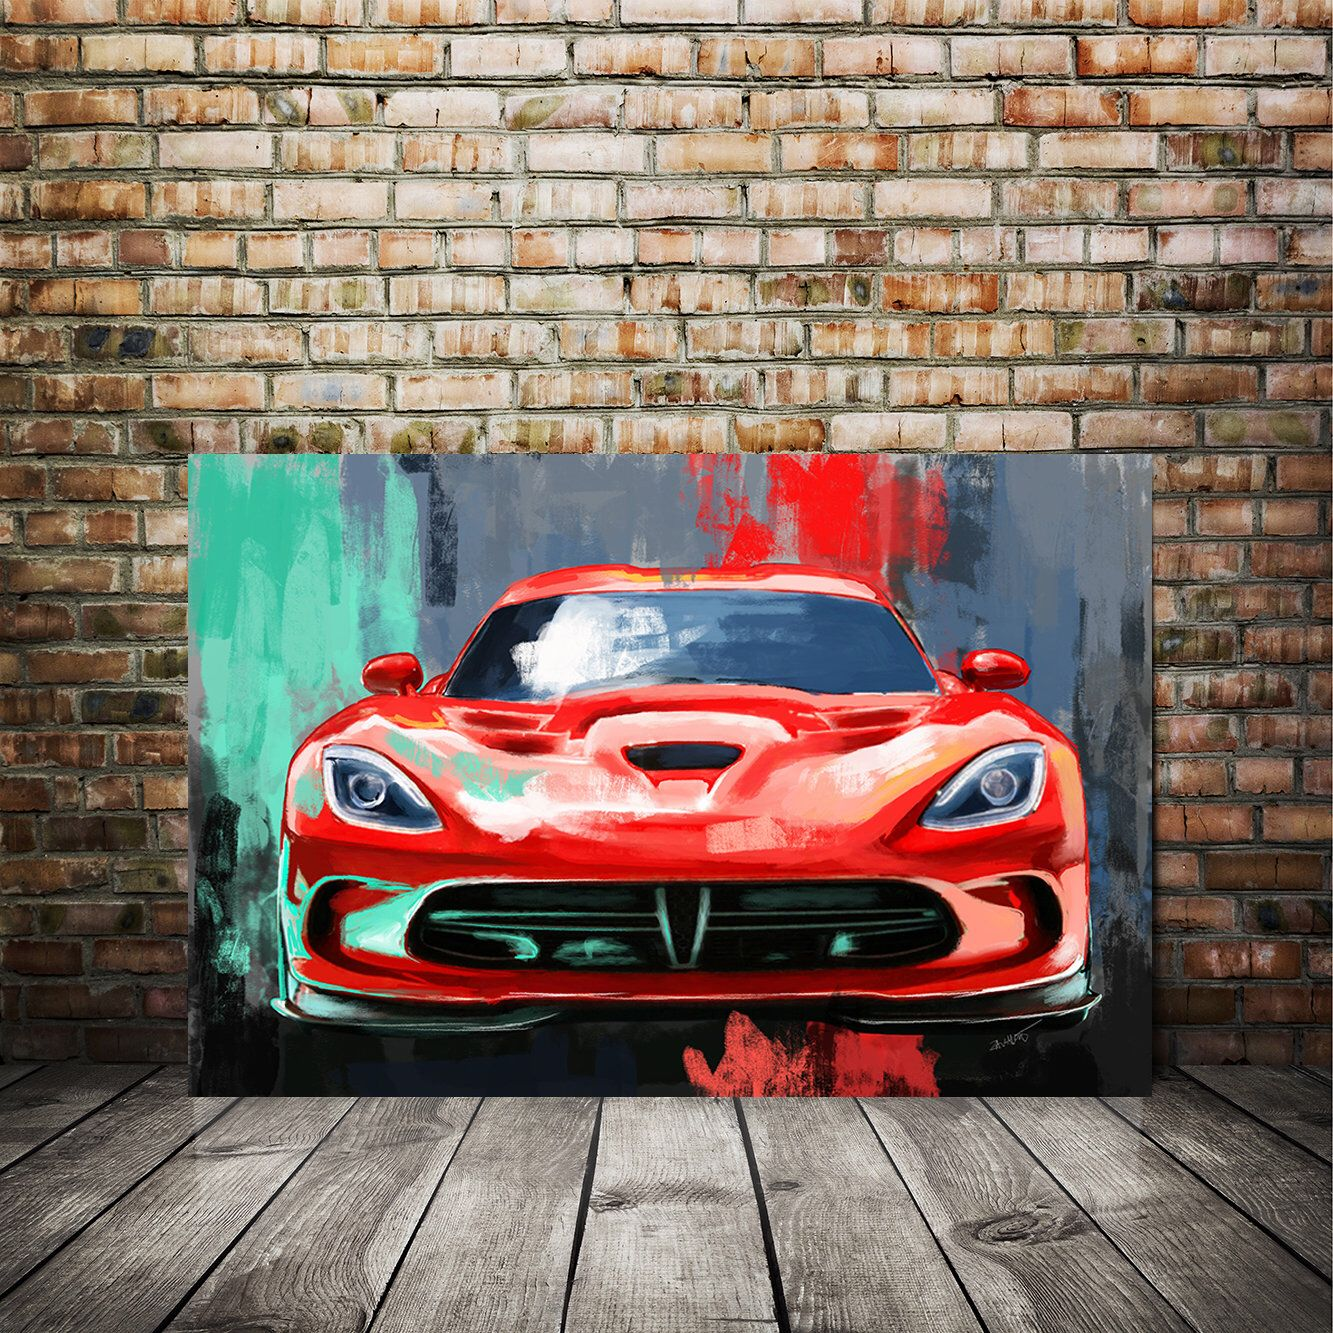 Auto Art Red Viper Srt Canvas Painting Sports Car Dodge Etsy In 2021 Car Painting Car Art Classic Sports Cars